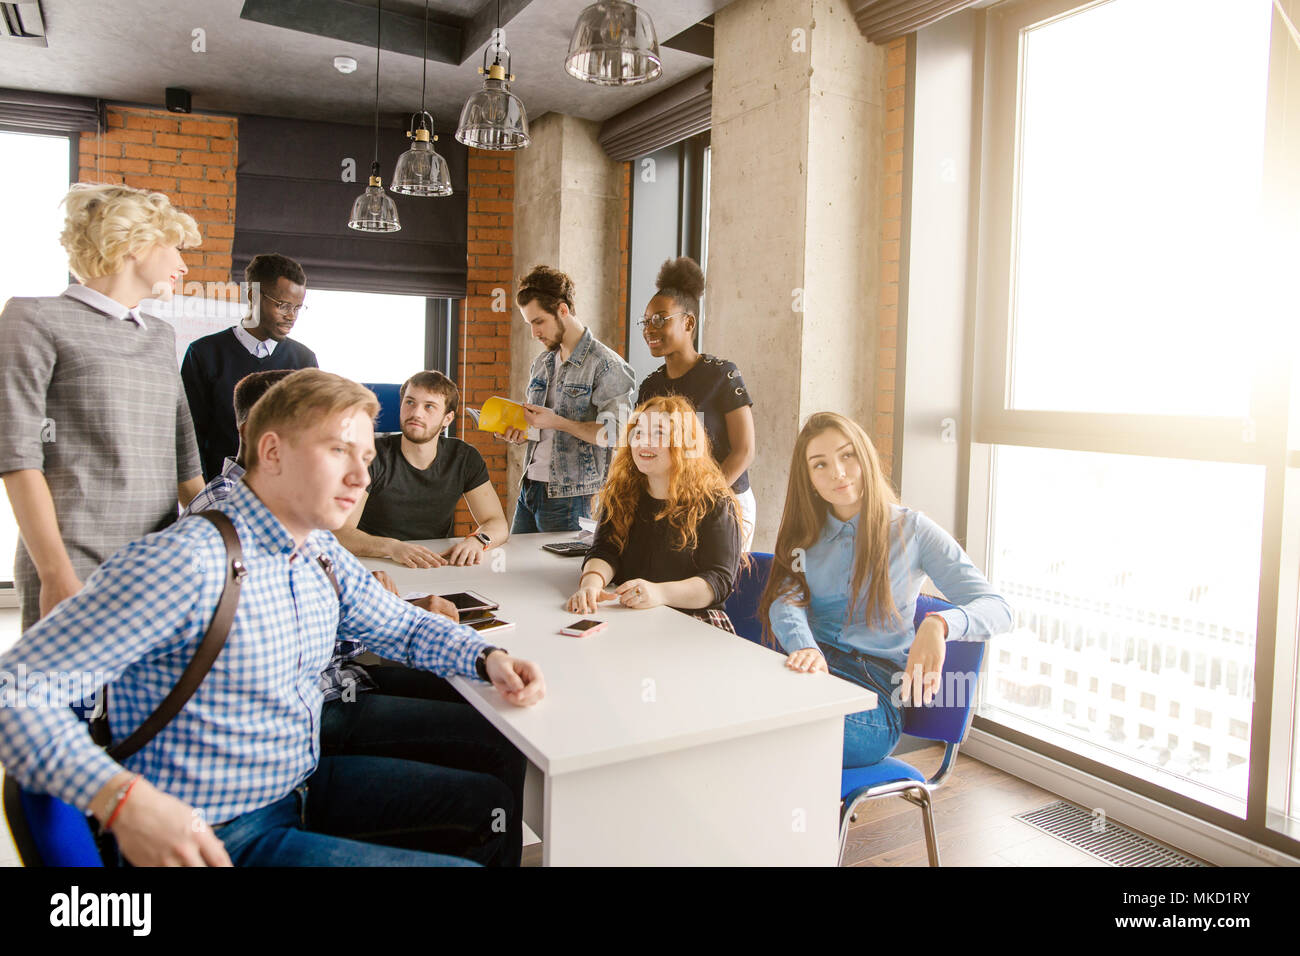 multicultural students activist forming group in consultation in the loft office building - Stock Image